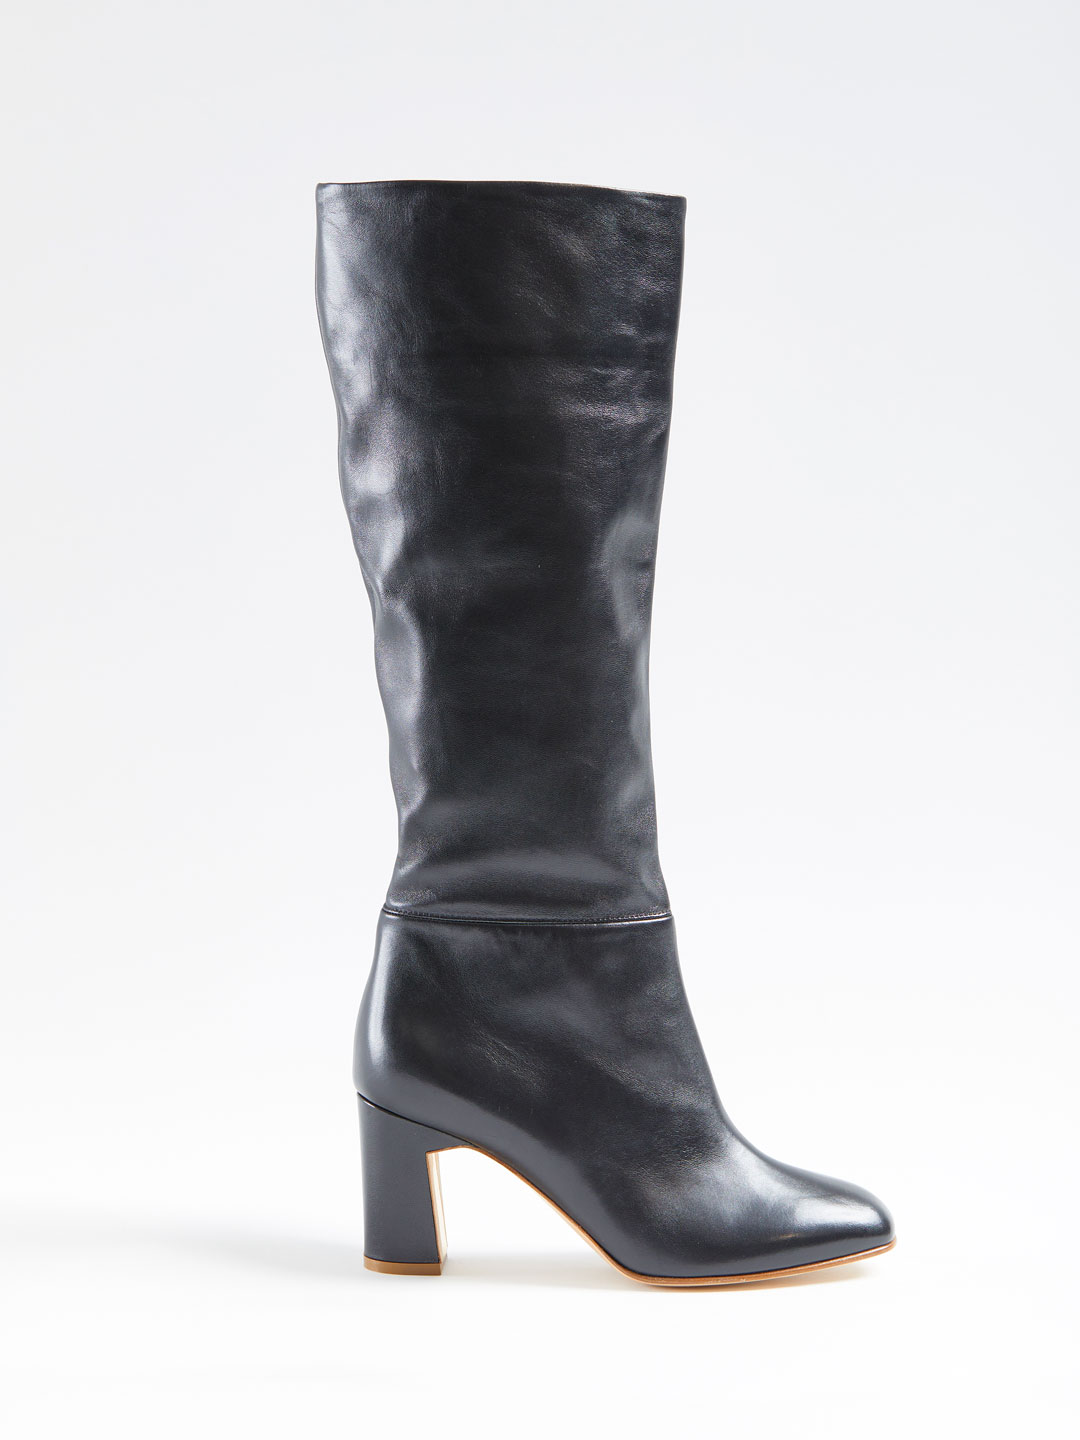 Au Revoir Heel Long Boots - Black